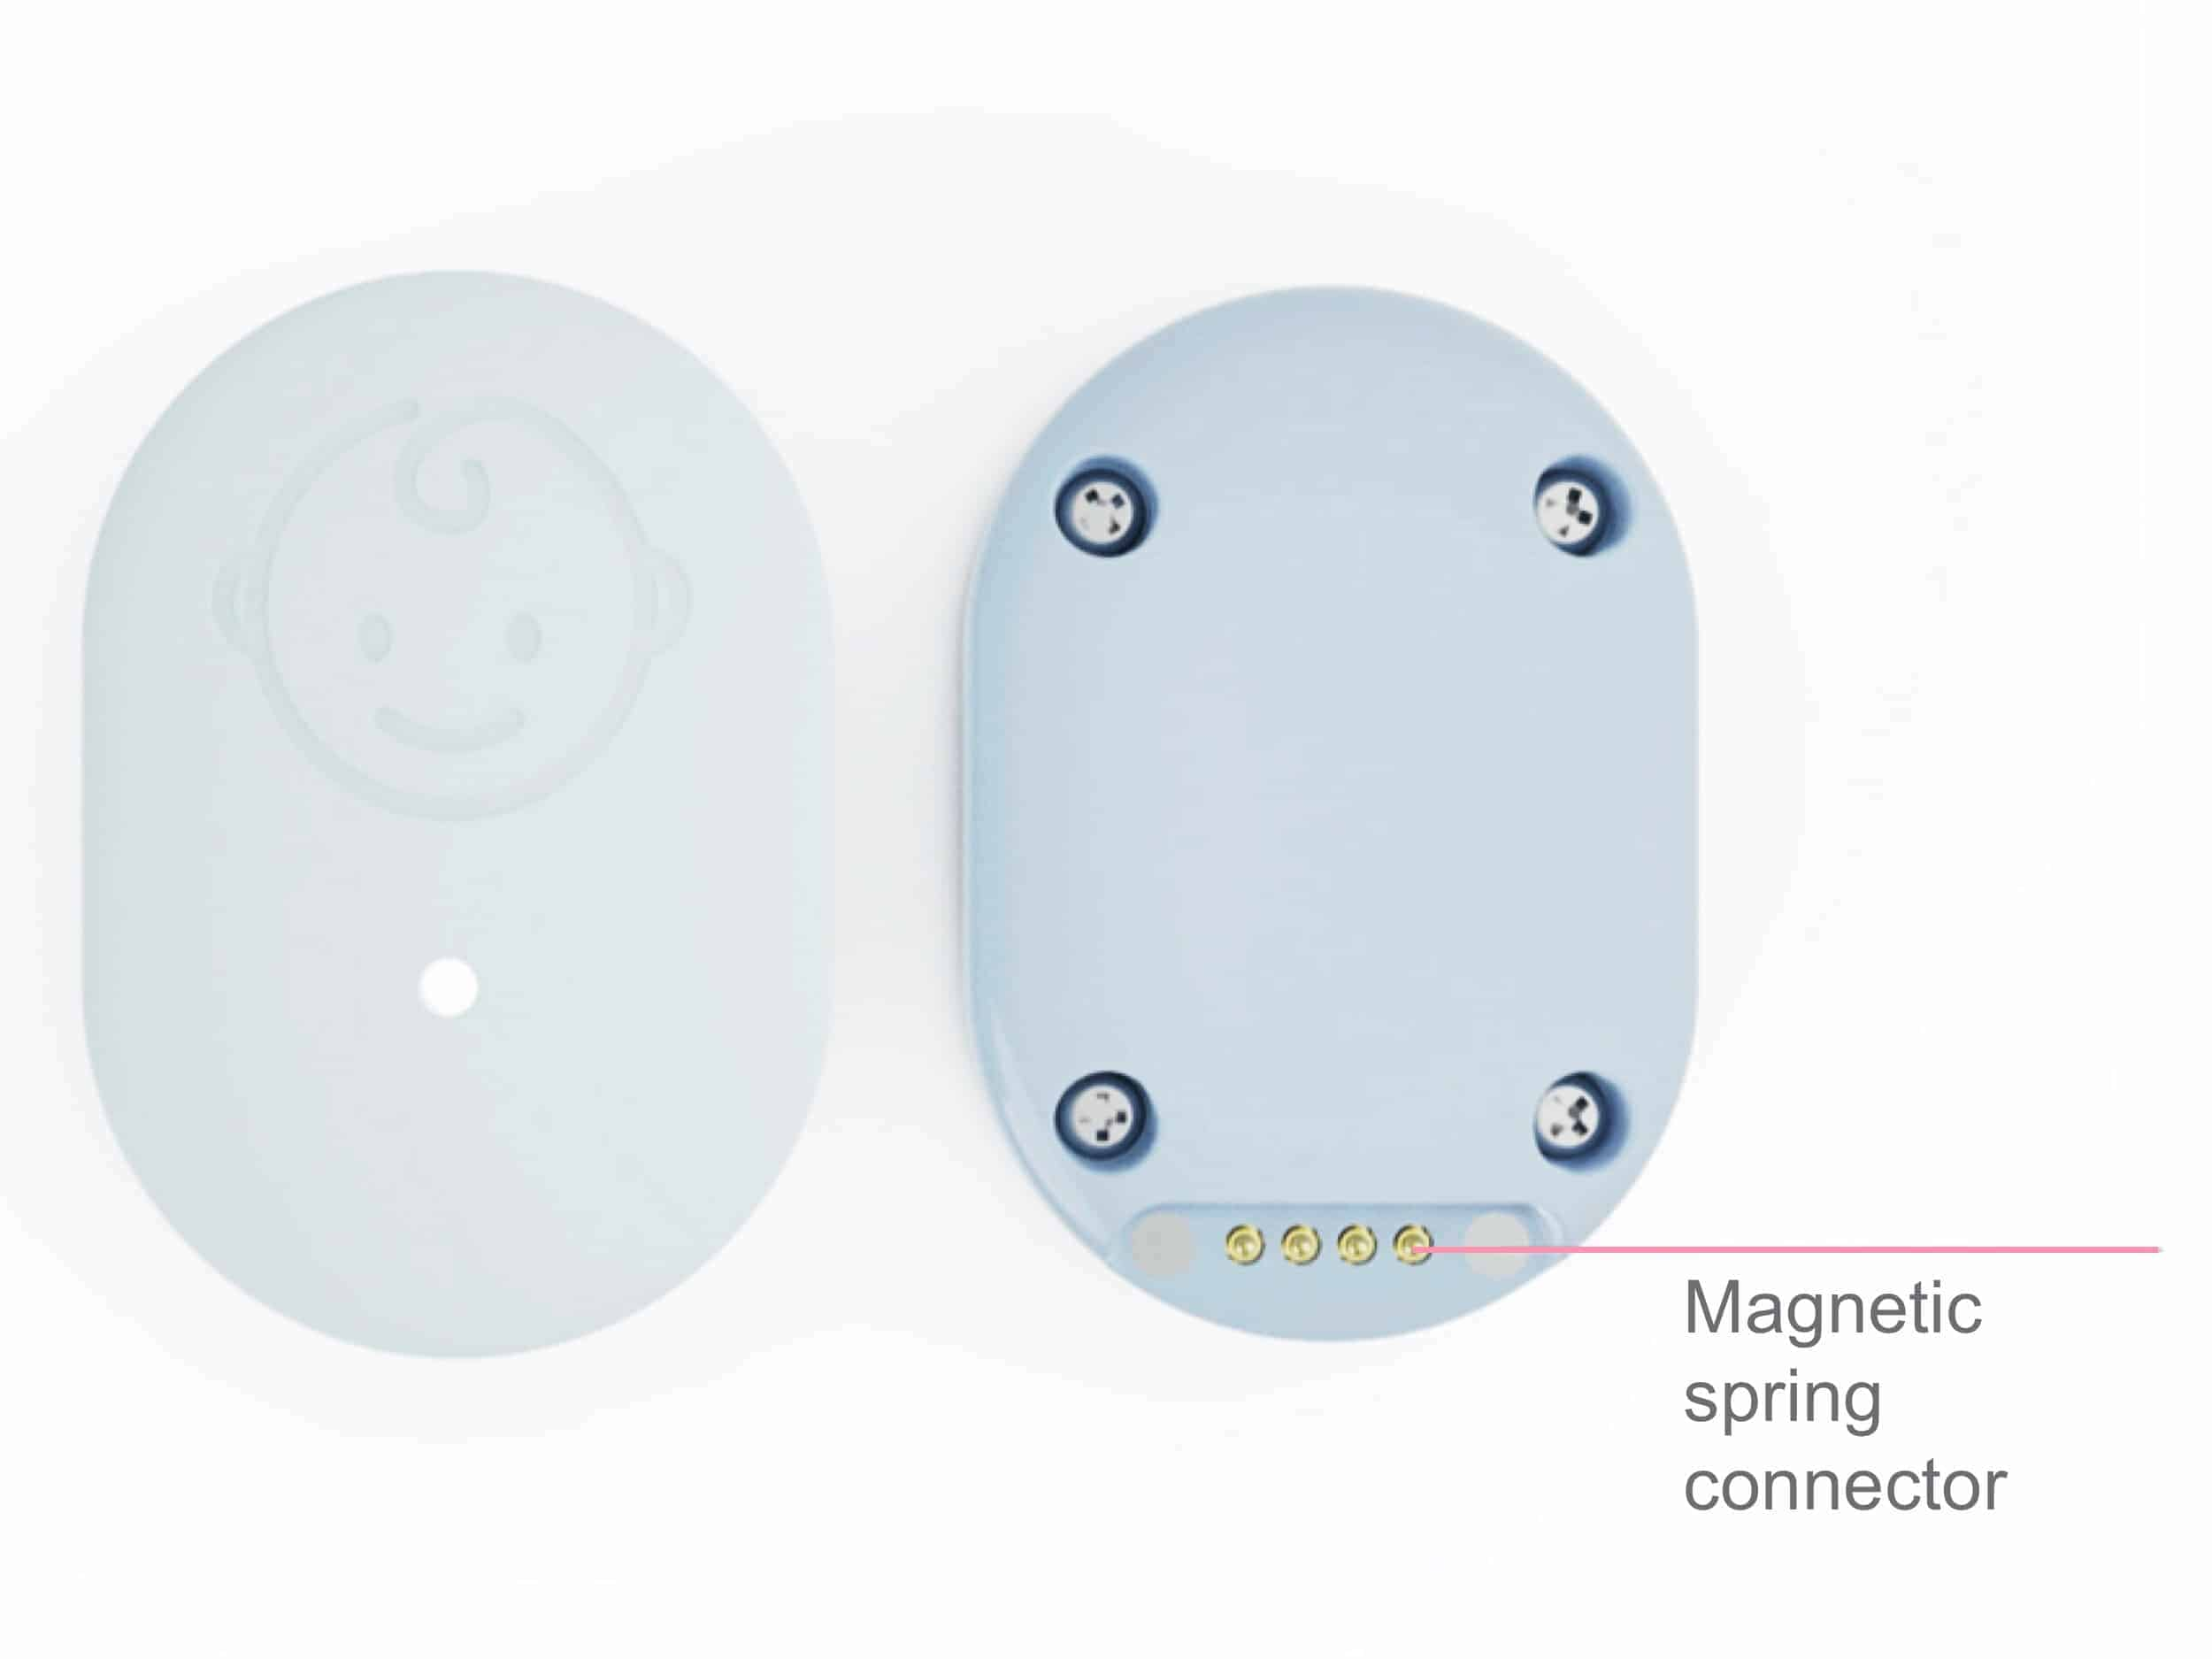 What are the key features of the Goldilocks Suit biometrics module receiver